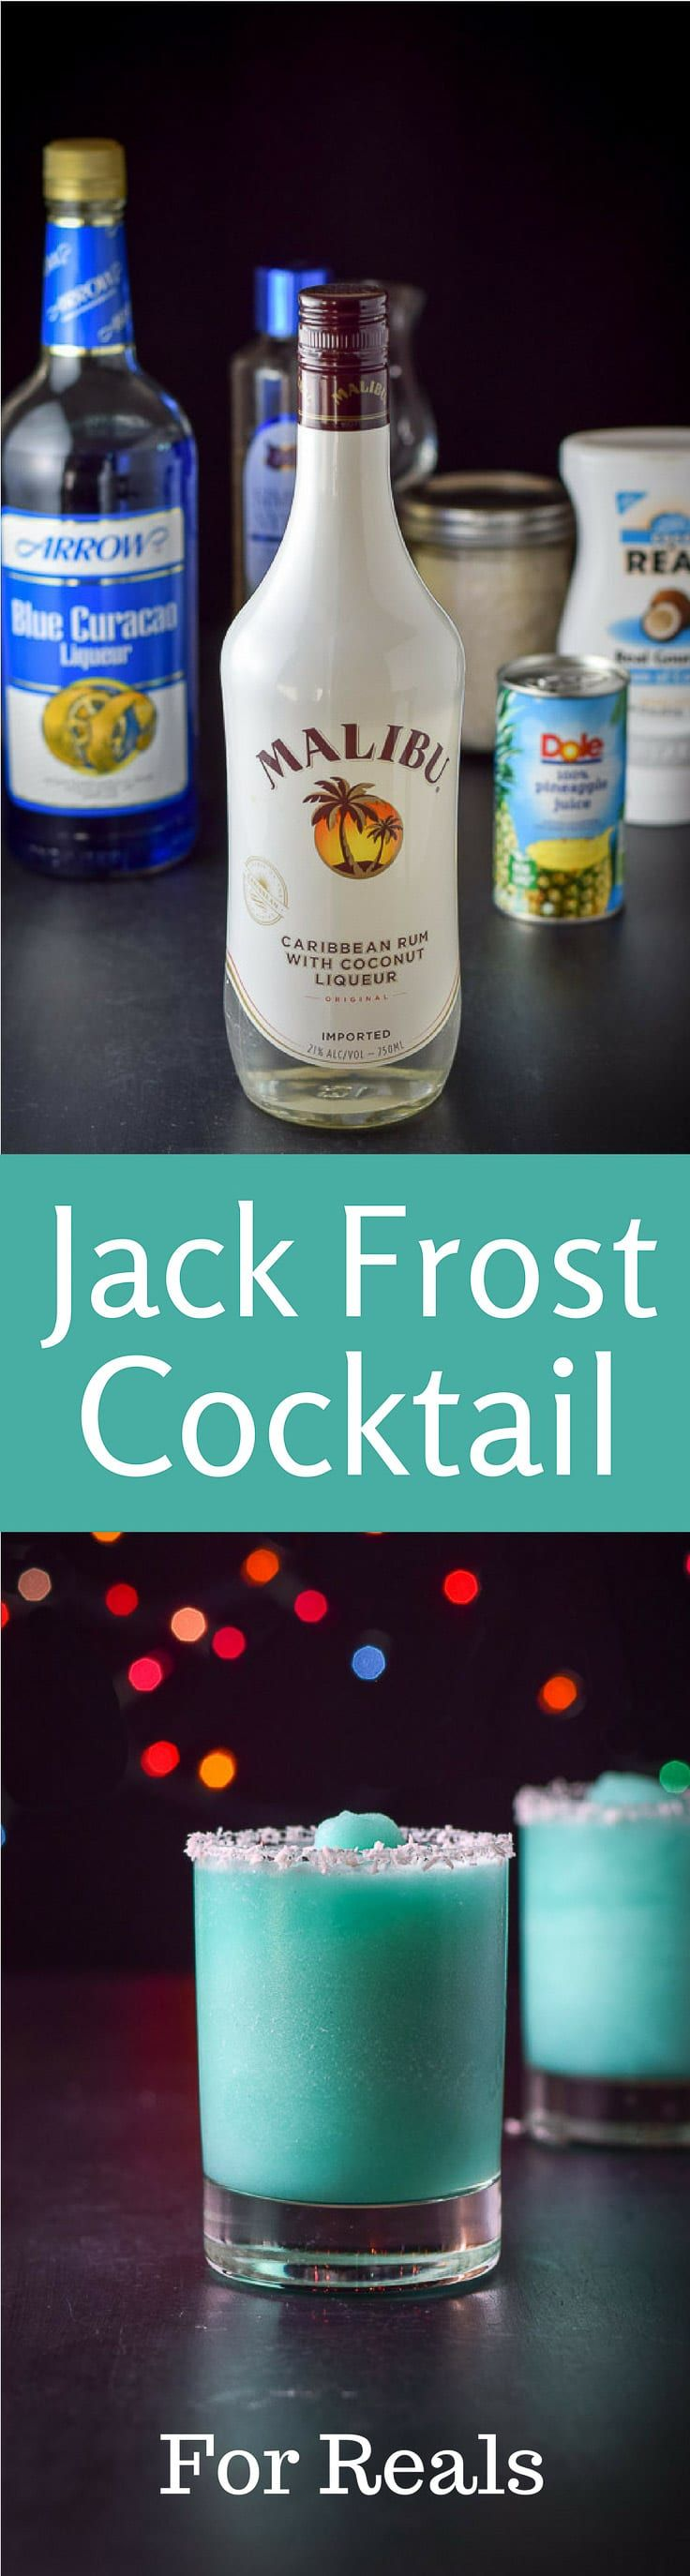 Year Round Jack Frost Cocktail is so delicious that you will want it all the time. Slushy and coconuty and super delicious! https://ddel.co/jckfst via @dishesdelish